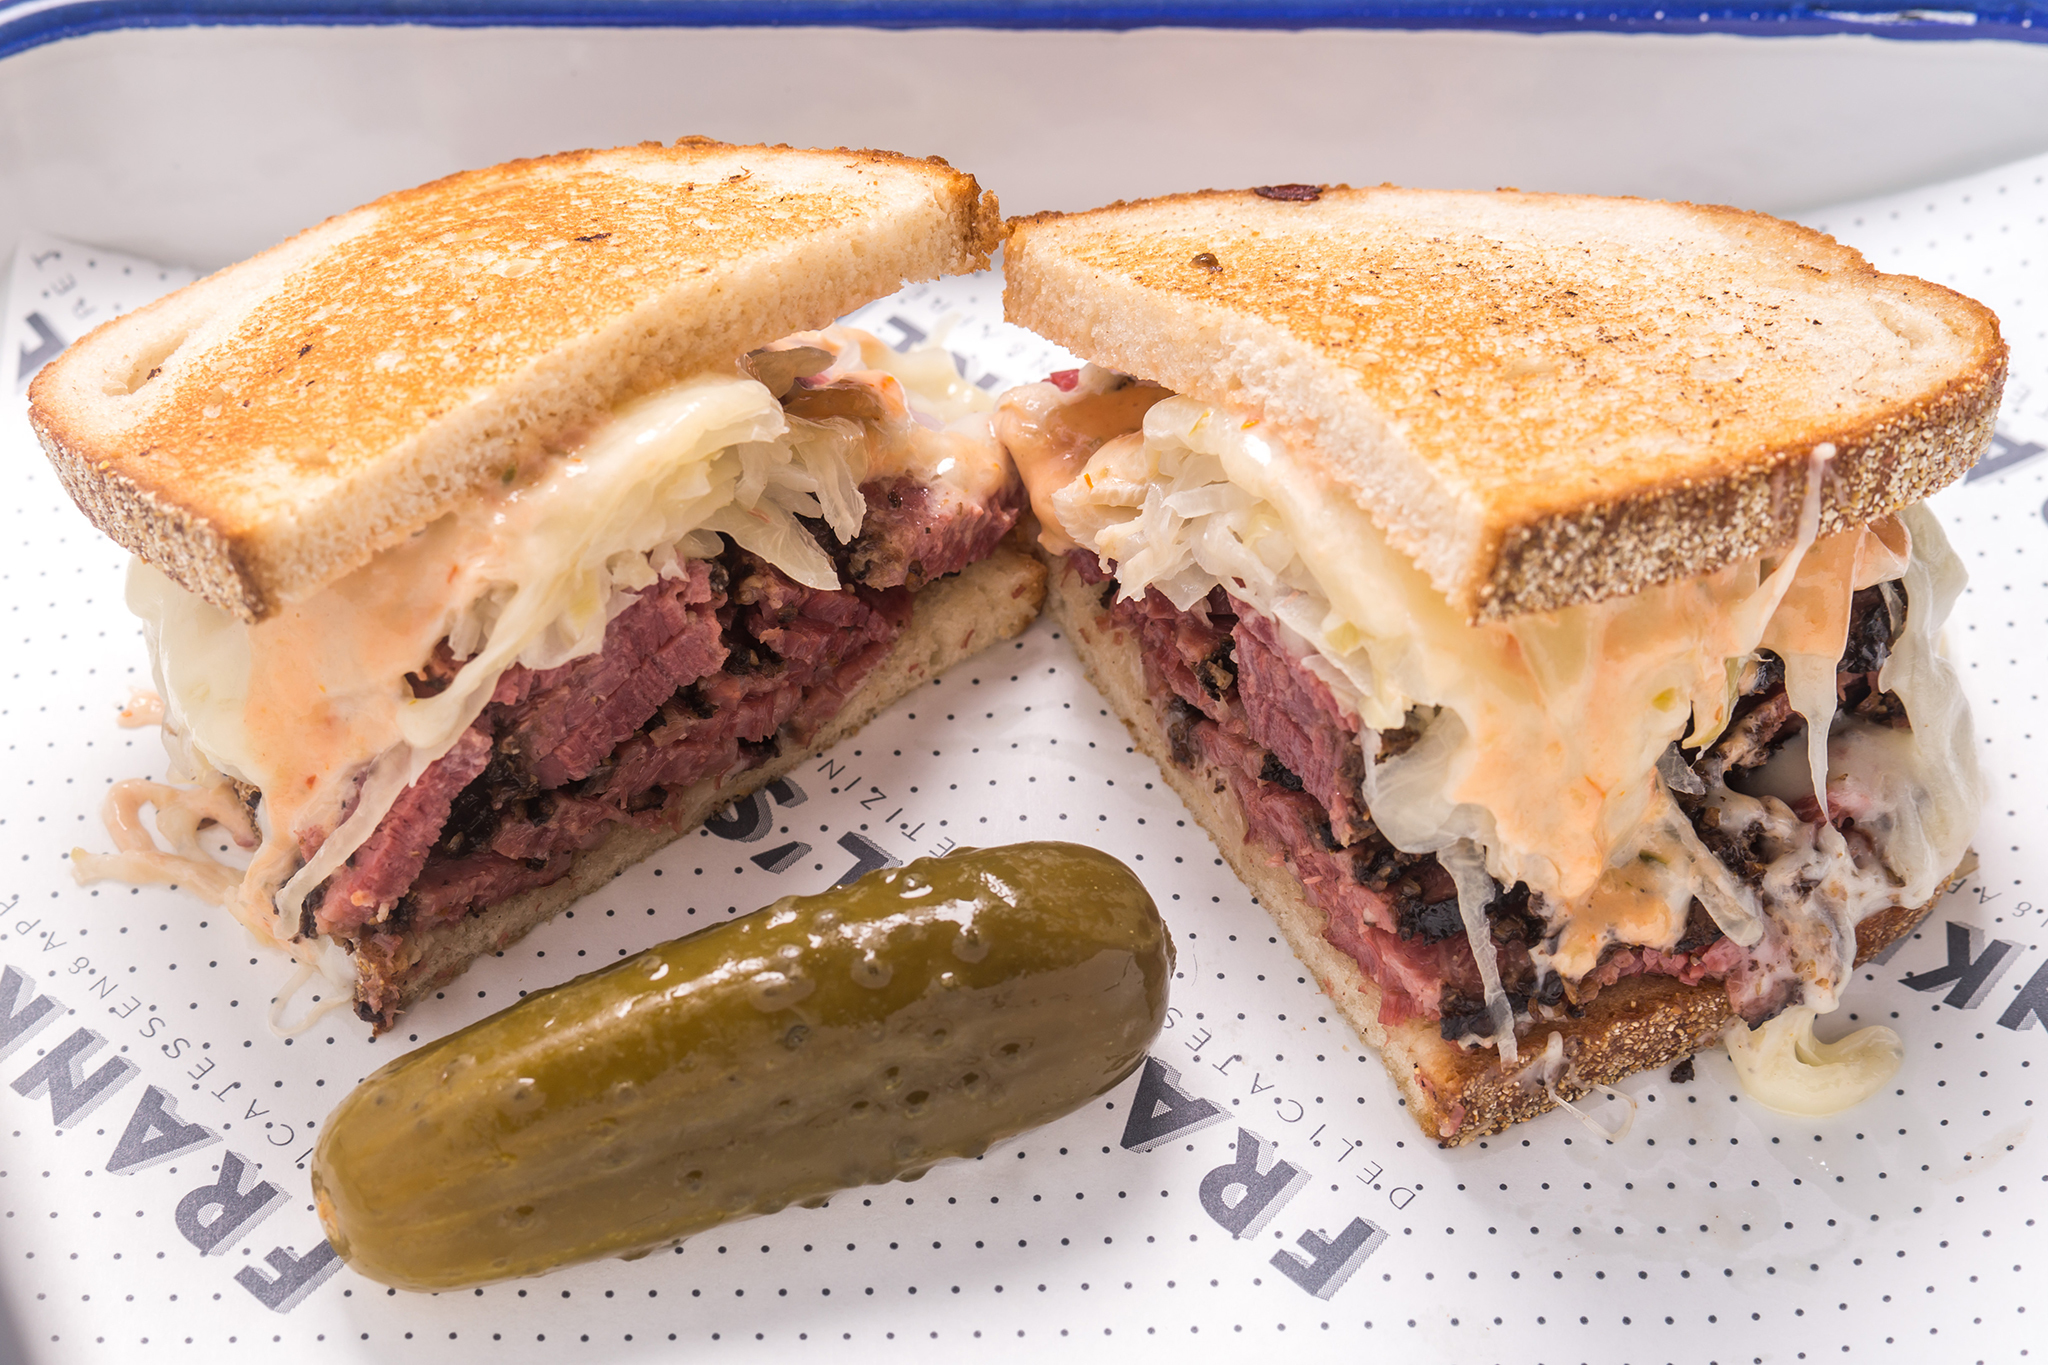 The best pastrami sandwiches in NYC